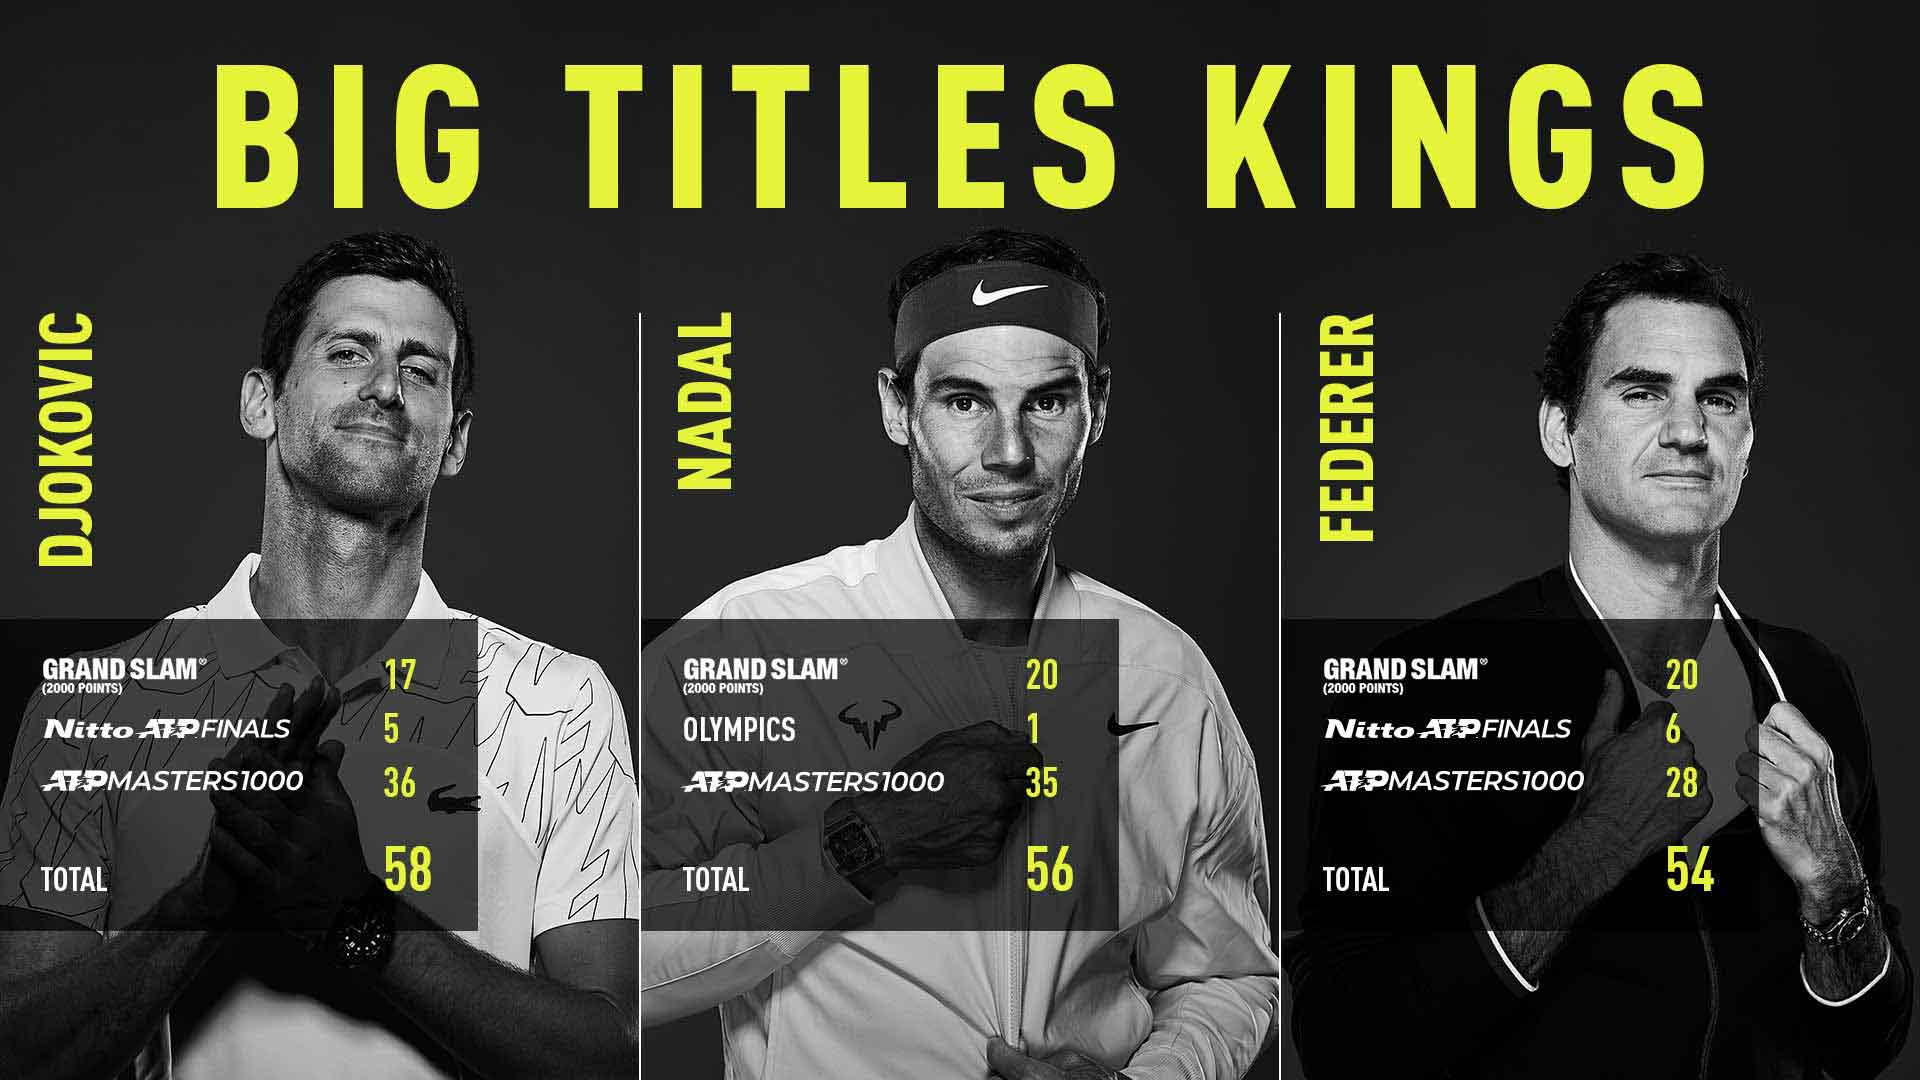 Rafael Nadal Equals Slams Record Tally, Adds To Big Titles Haul - ATP Tour